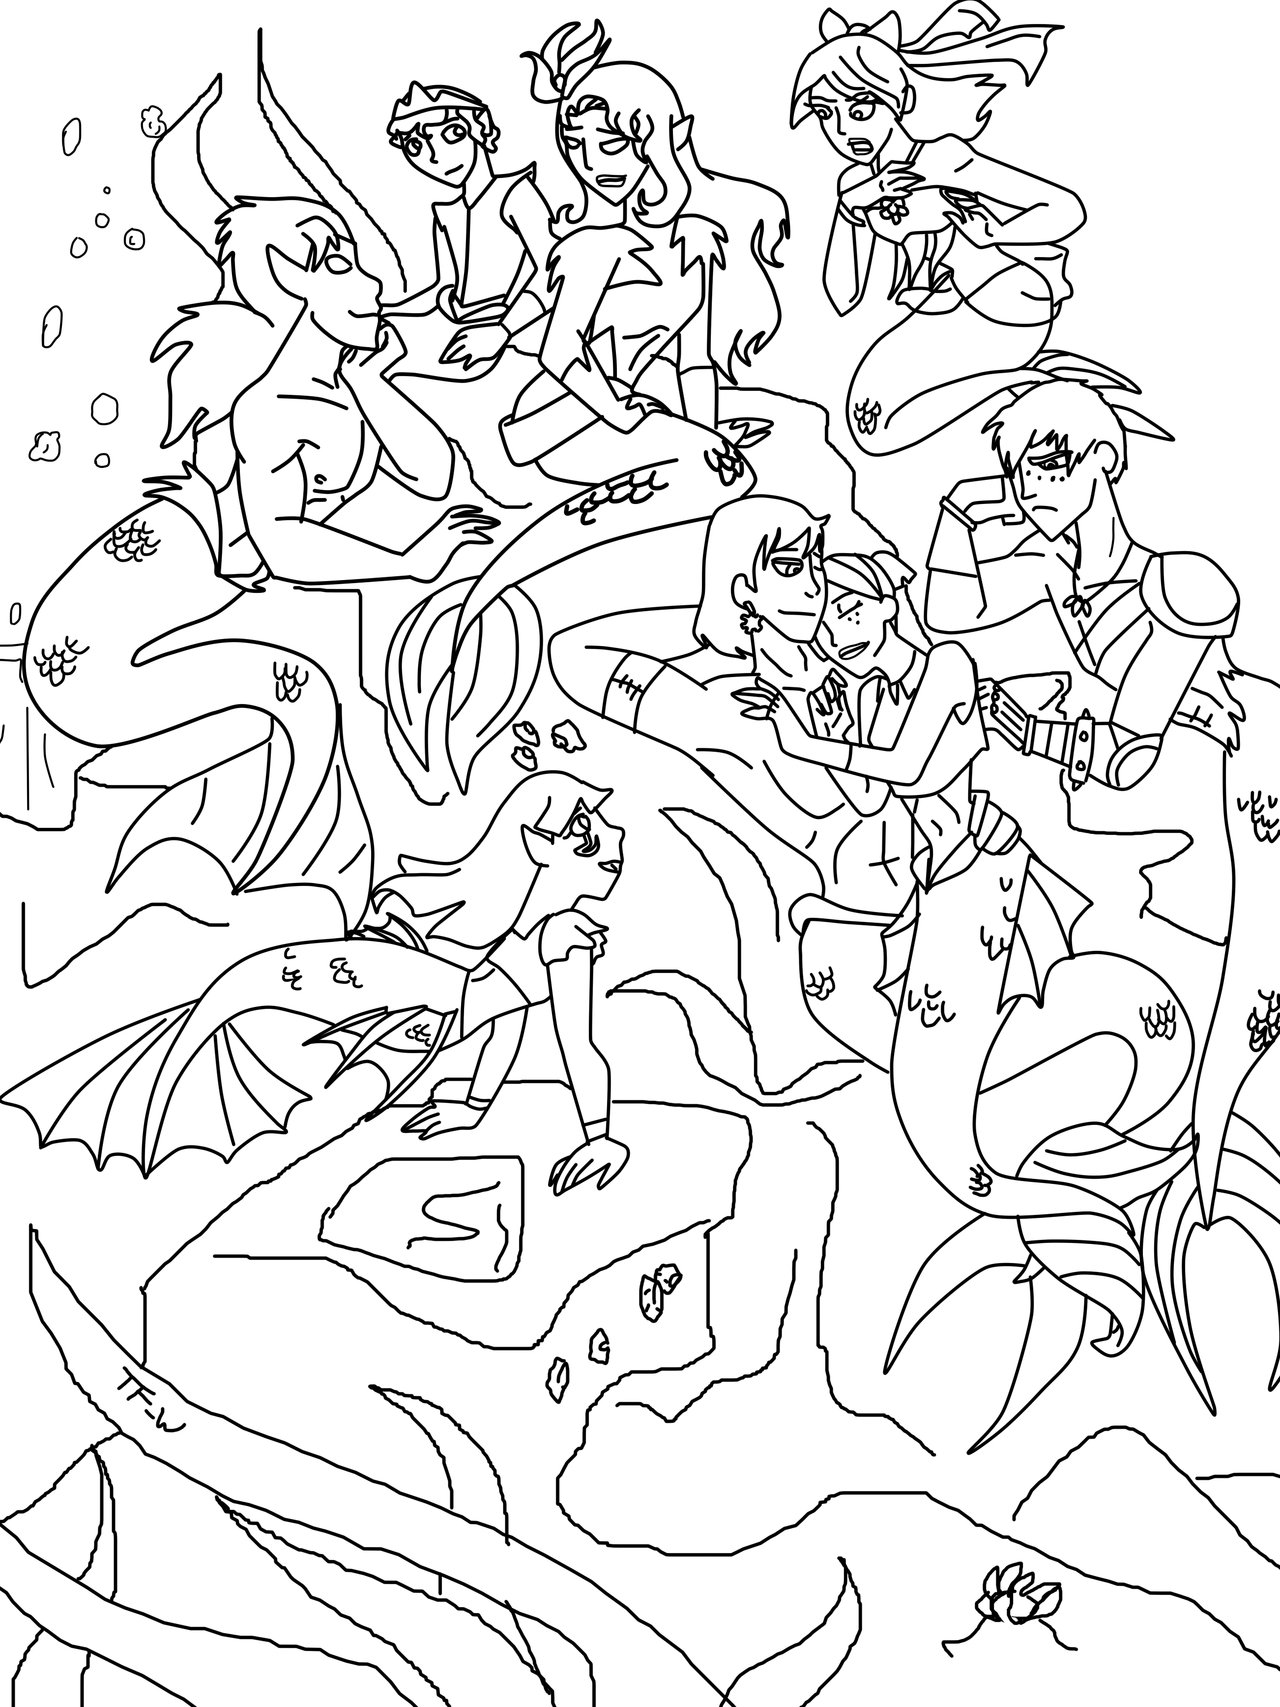 Under The Sea Drawing at GetDrawings.com | Free for personal use ...